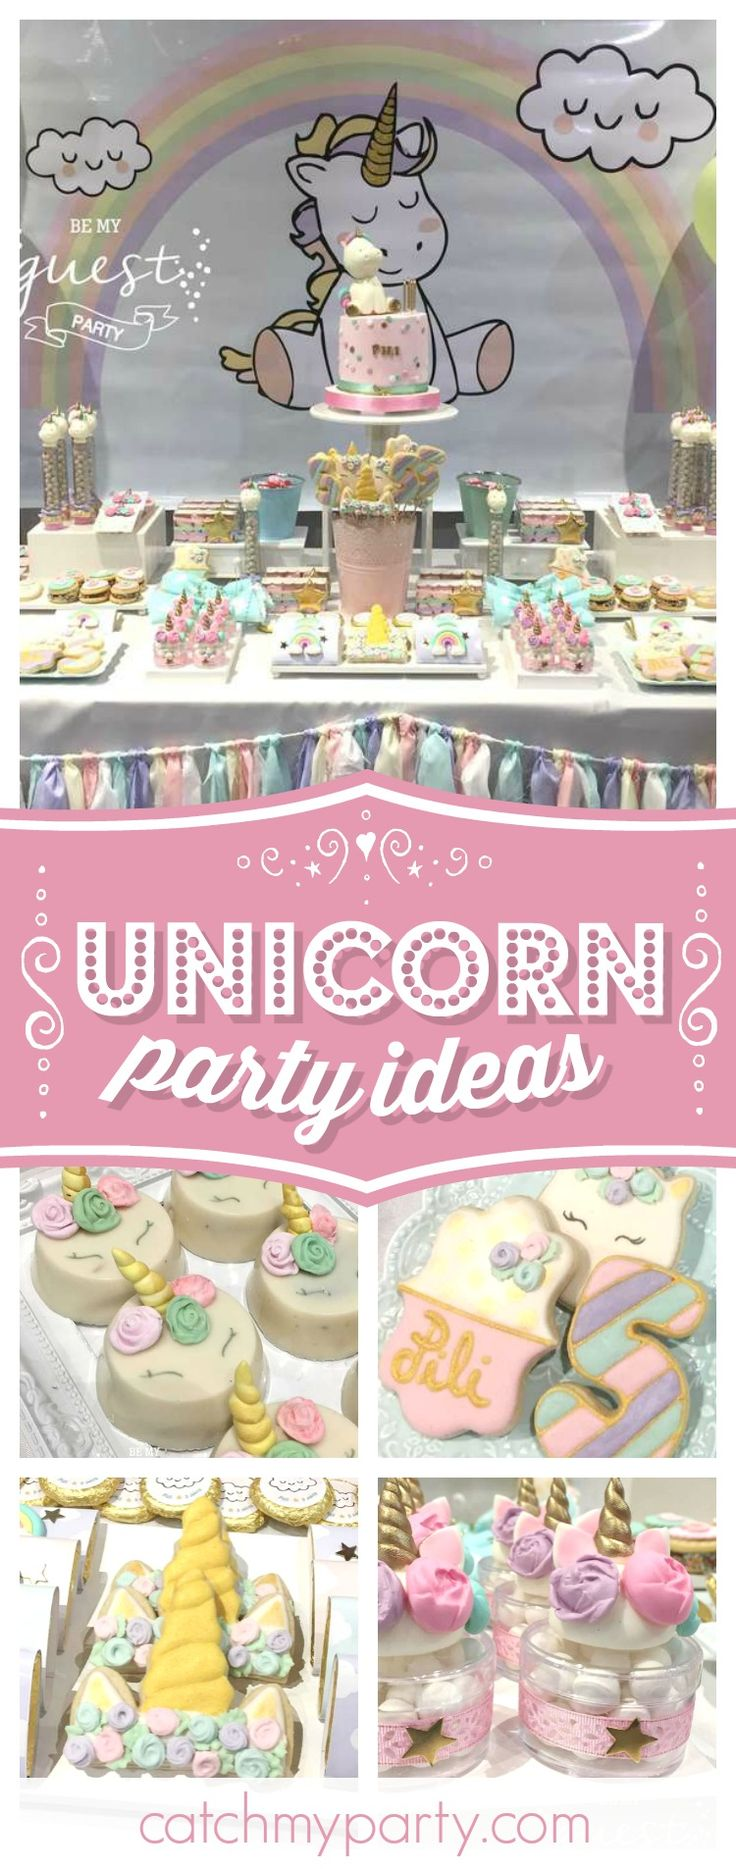 Take a look at this magical Unicorn birthday party! The sugar coated cookies are so pretty!! See more party ideas and share yours at CatchMyParty.com #unicorn #partyideas